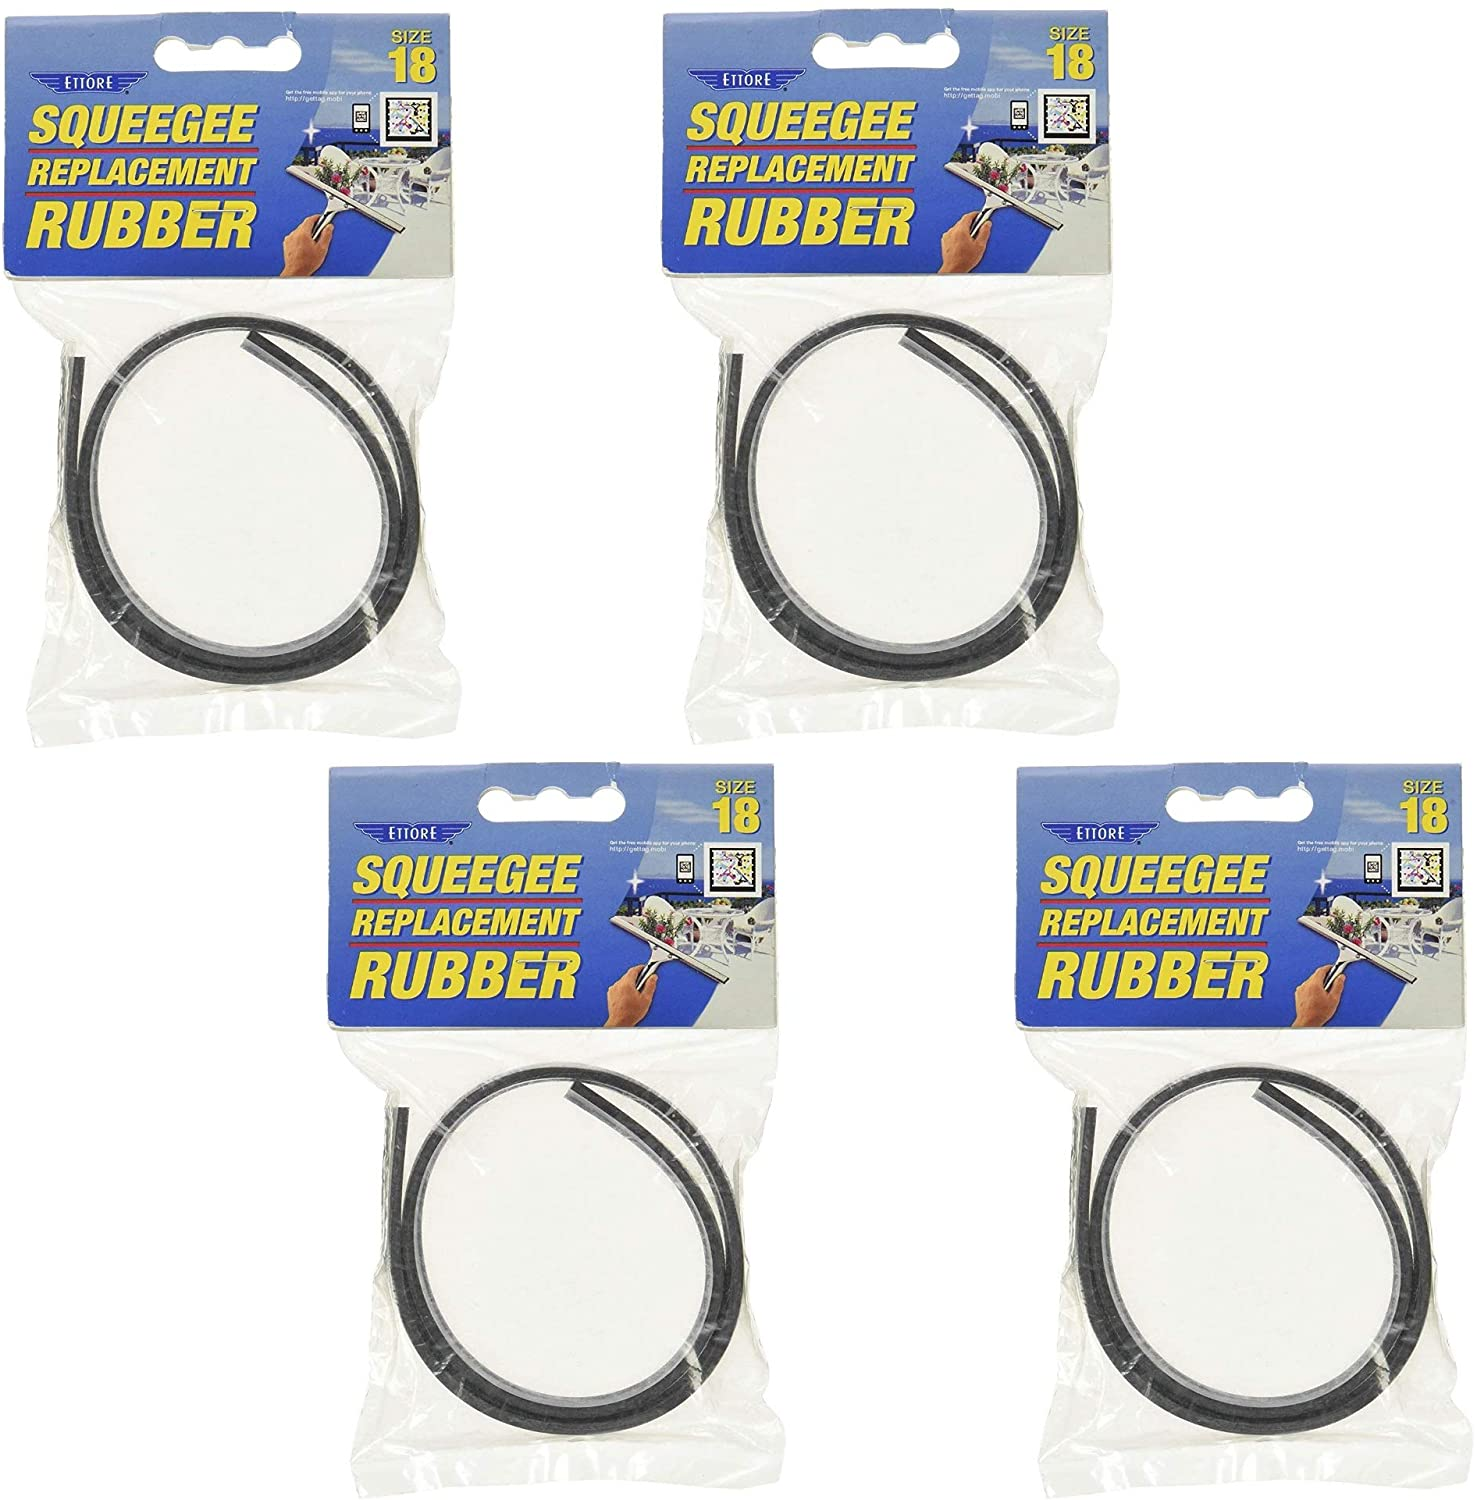 Ettore Replacement Squeegee Rubber, 18-Inch, 4 Pack